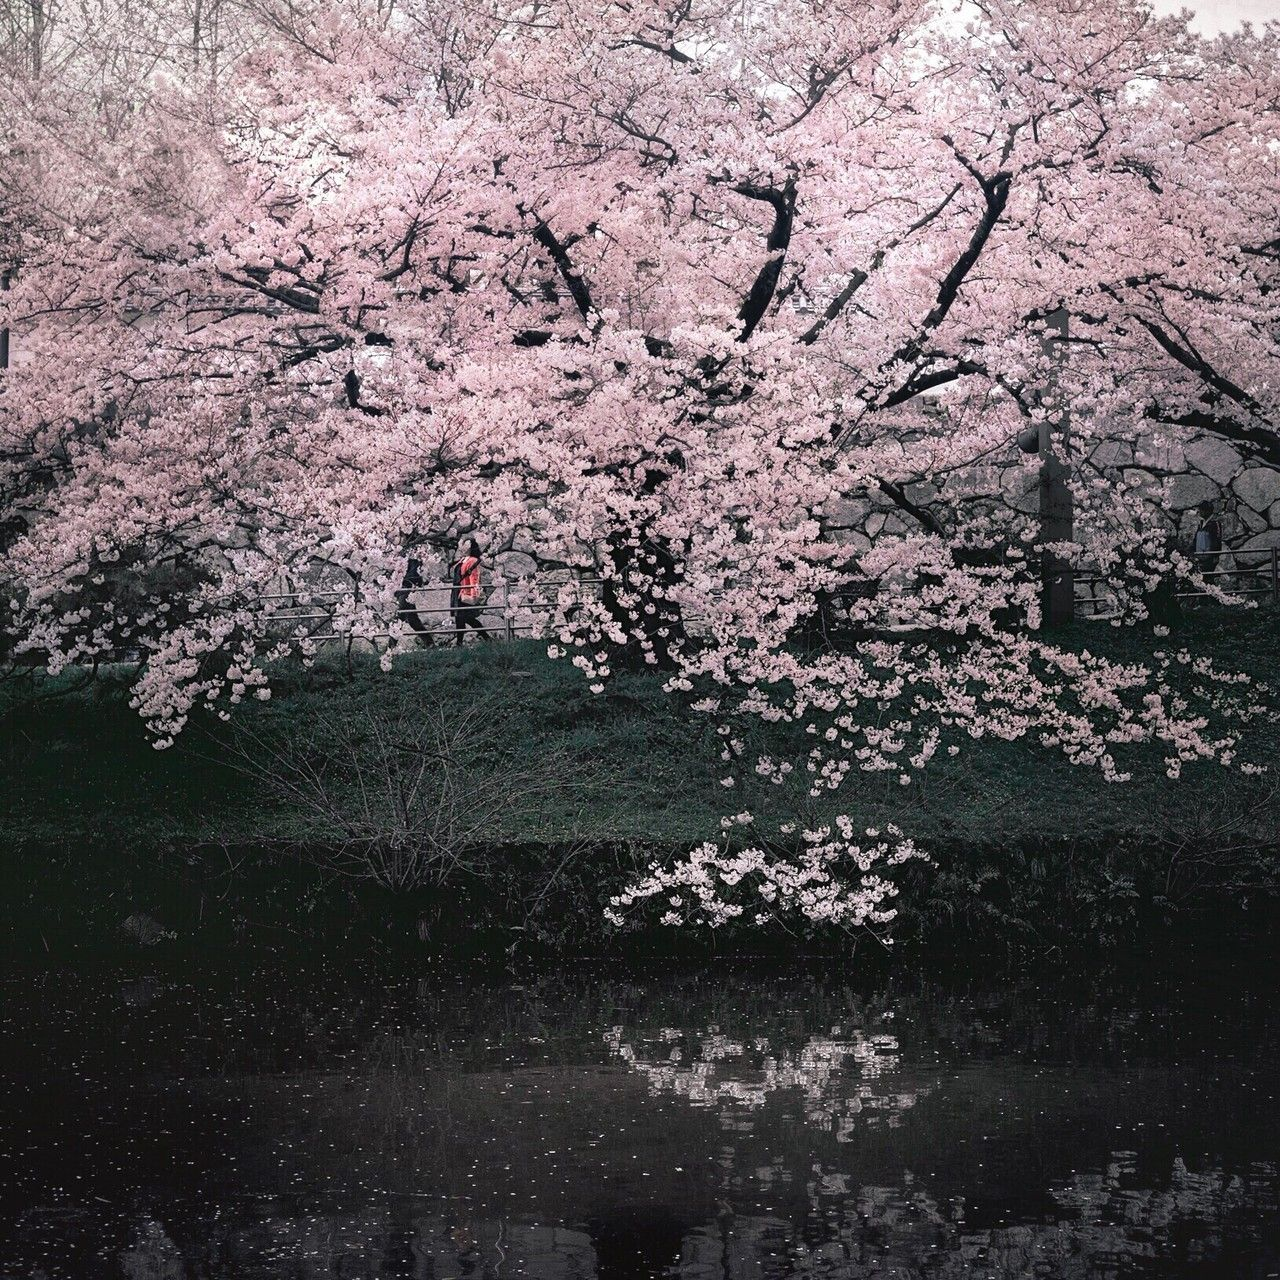 Plant Tree Flower Beauty In Nature Flowering Plant Nature Blossom Water Springtime Freshness Cherry Blossom Tree Photography Tree Id Cherry Blossom